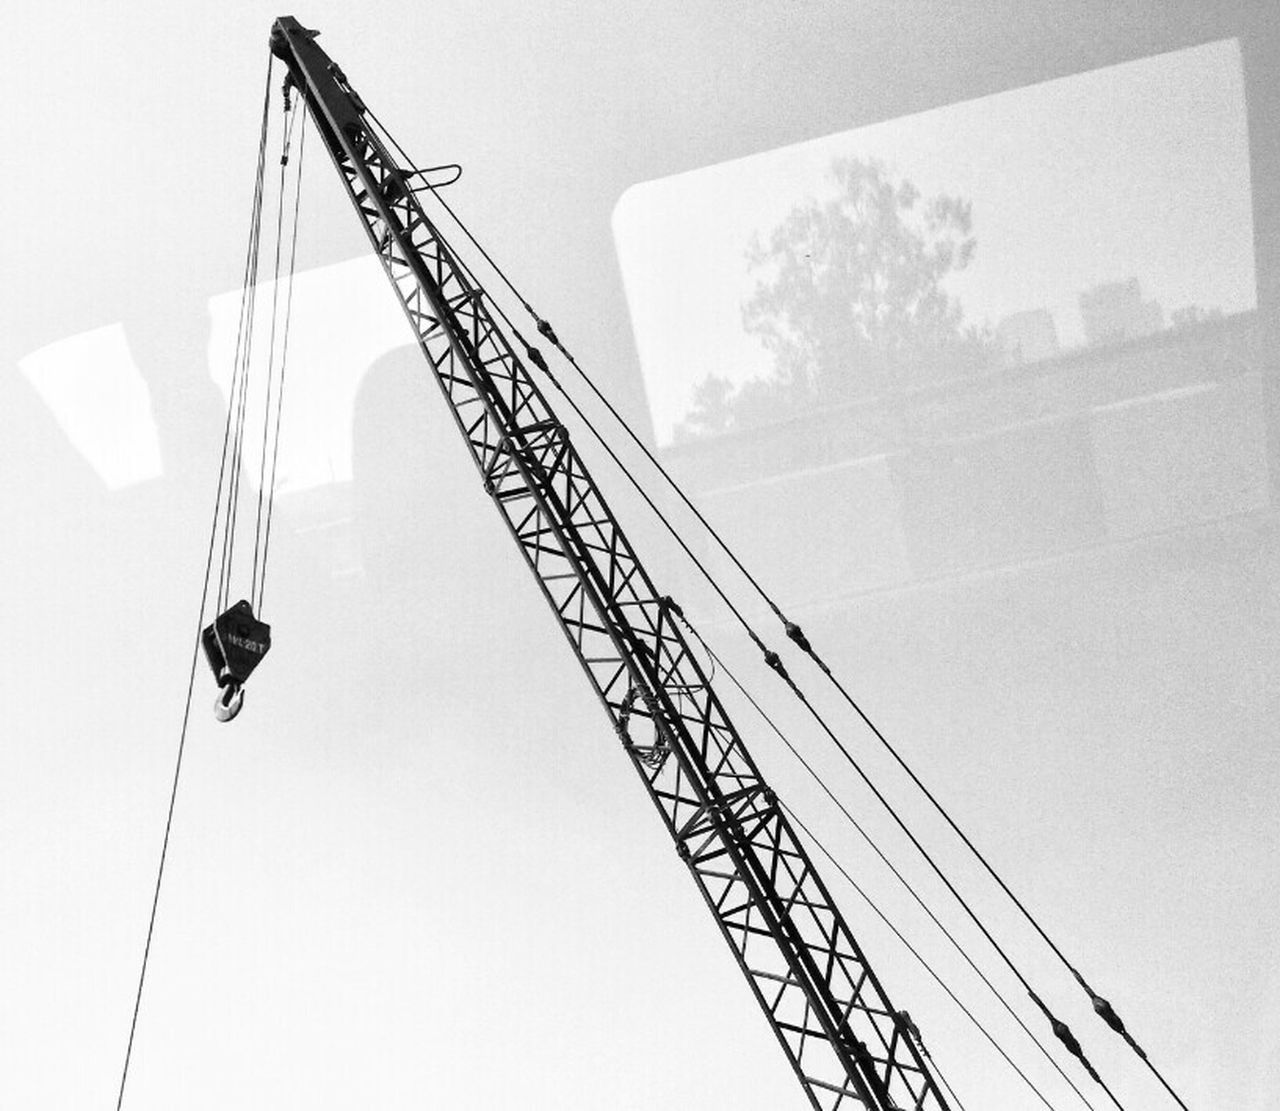 crane - construction machinery, construction site, low angle view, development, construction, construction machinery, working, day, building - activity, industry, crane, architecture, occupation, built structure, outdoors, no people, sky